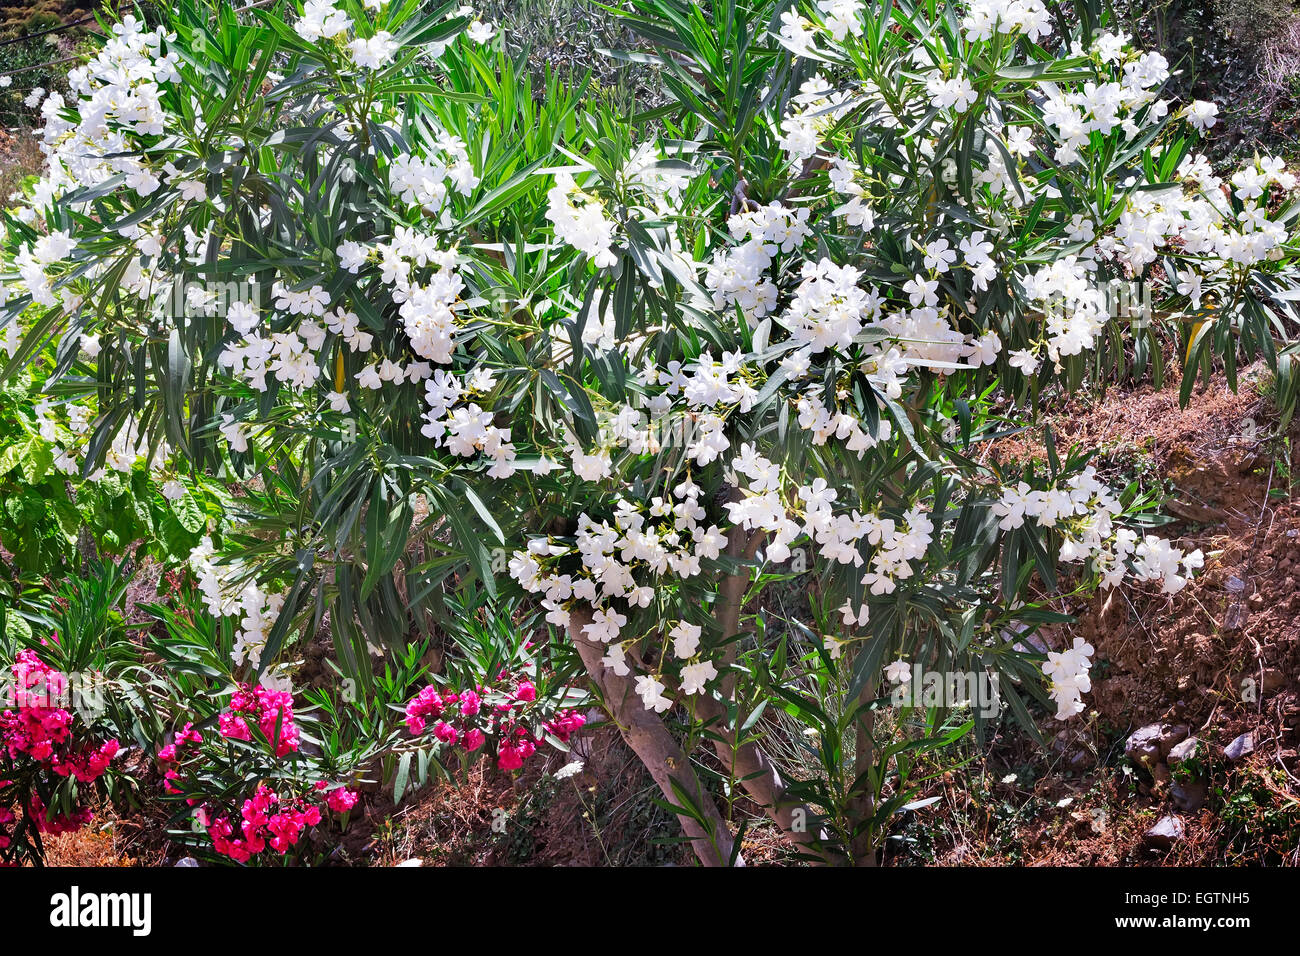 Blooming Oleander With A Large Number Of Beautiful White Flowers And